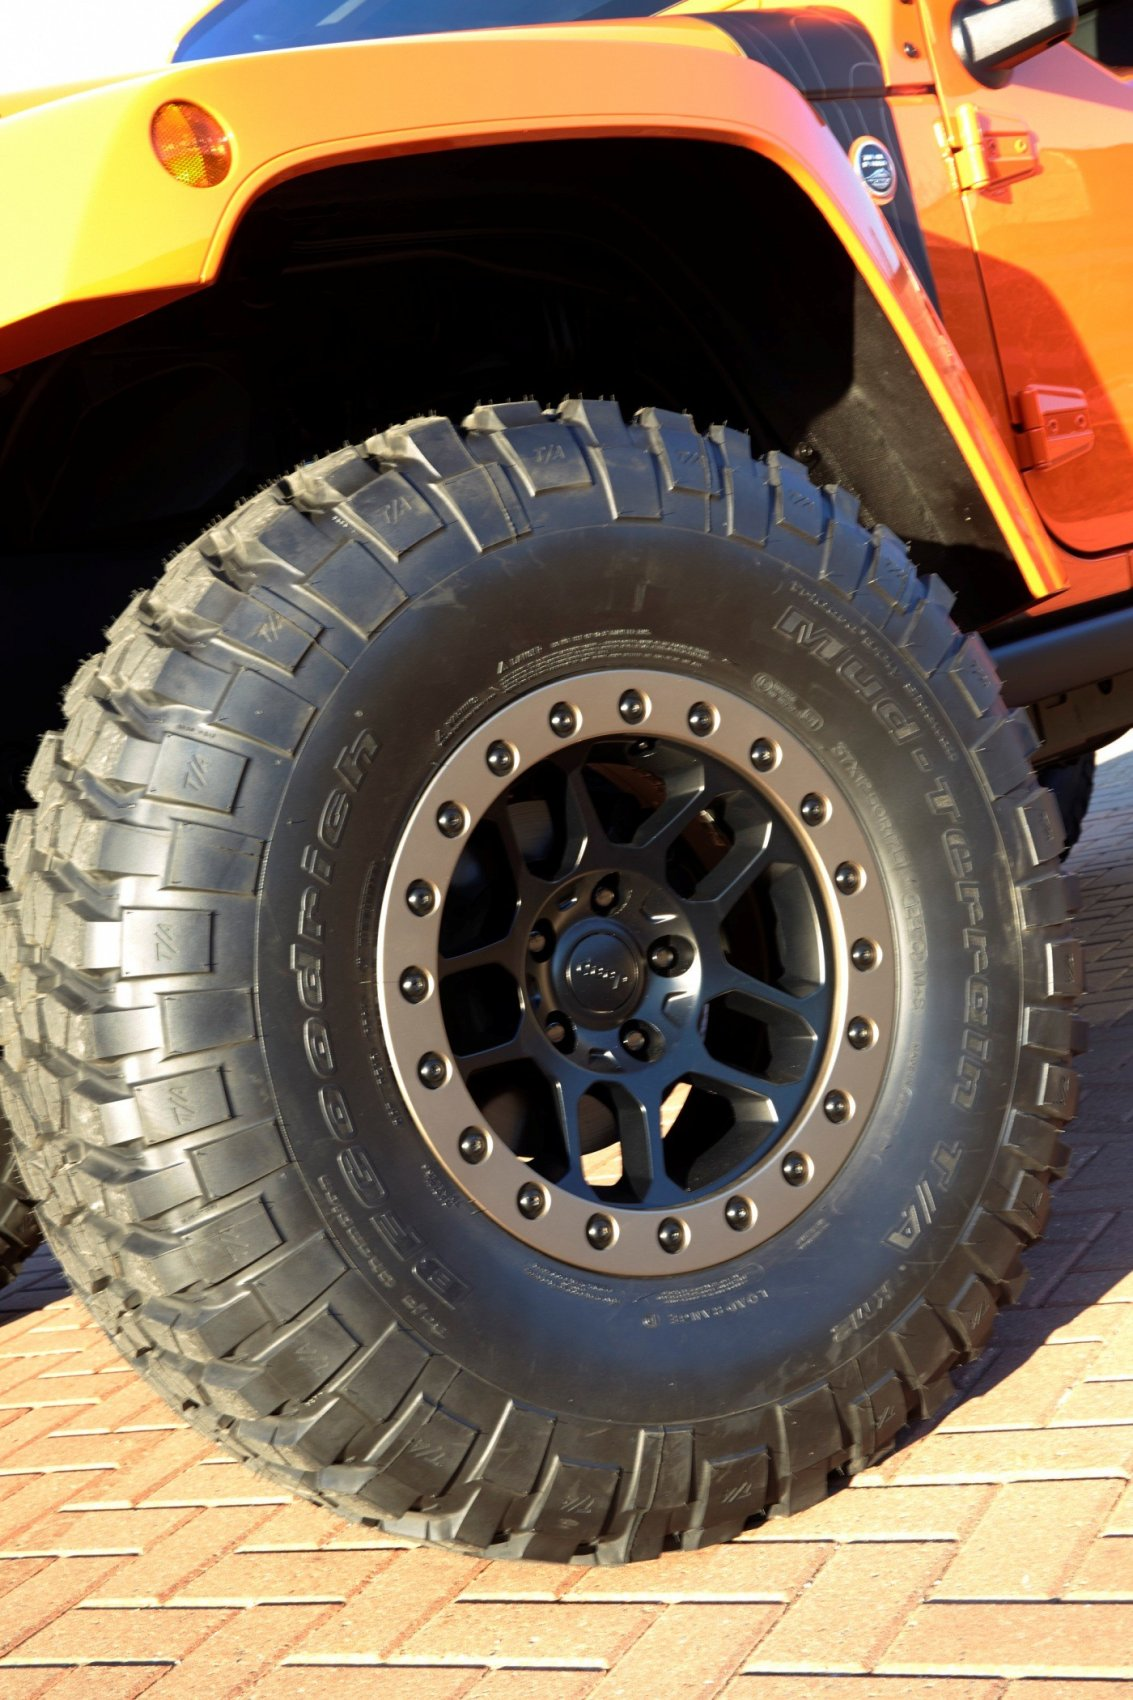 Jeep Jk Wheels >> Jeep Wrangler MOAB Concepts Are All Do-Able Via Latest MOPAR Upgrades + Cool Option Animations